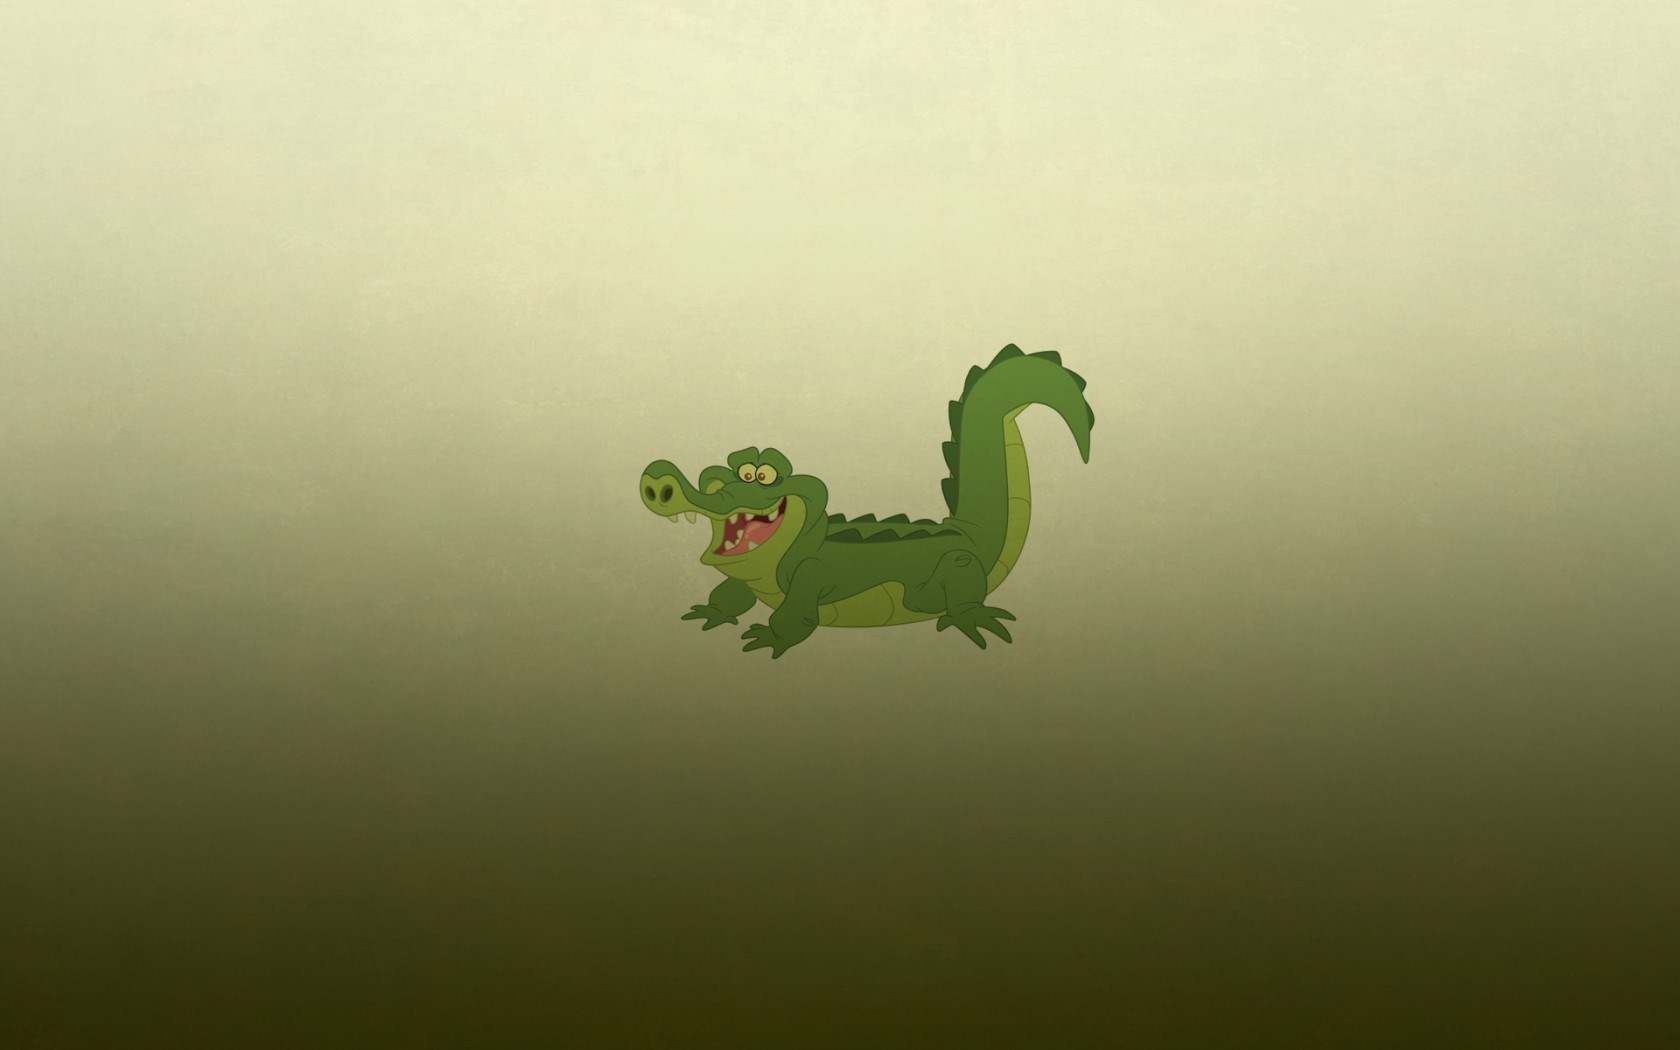 Alligator Crocodile Green Minimalism Cartoon